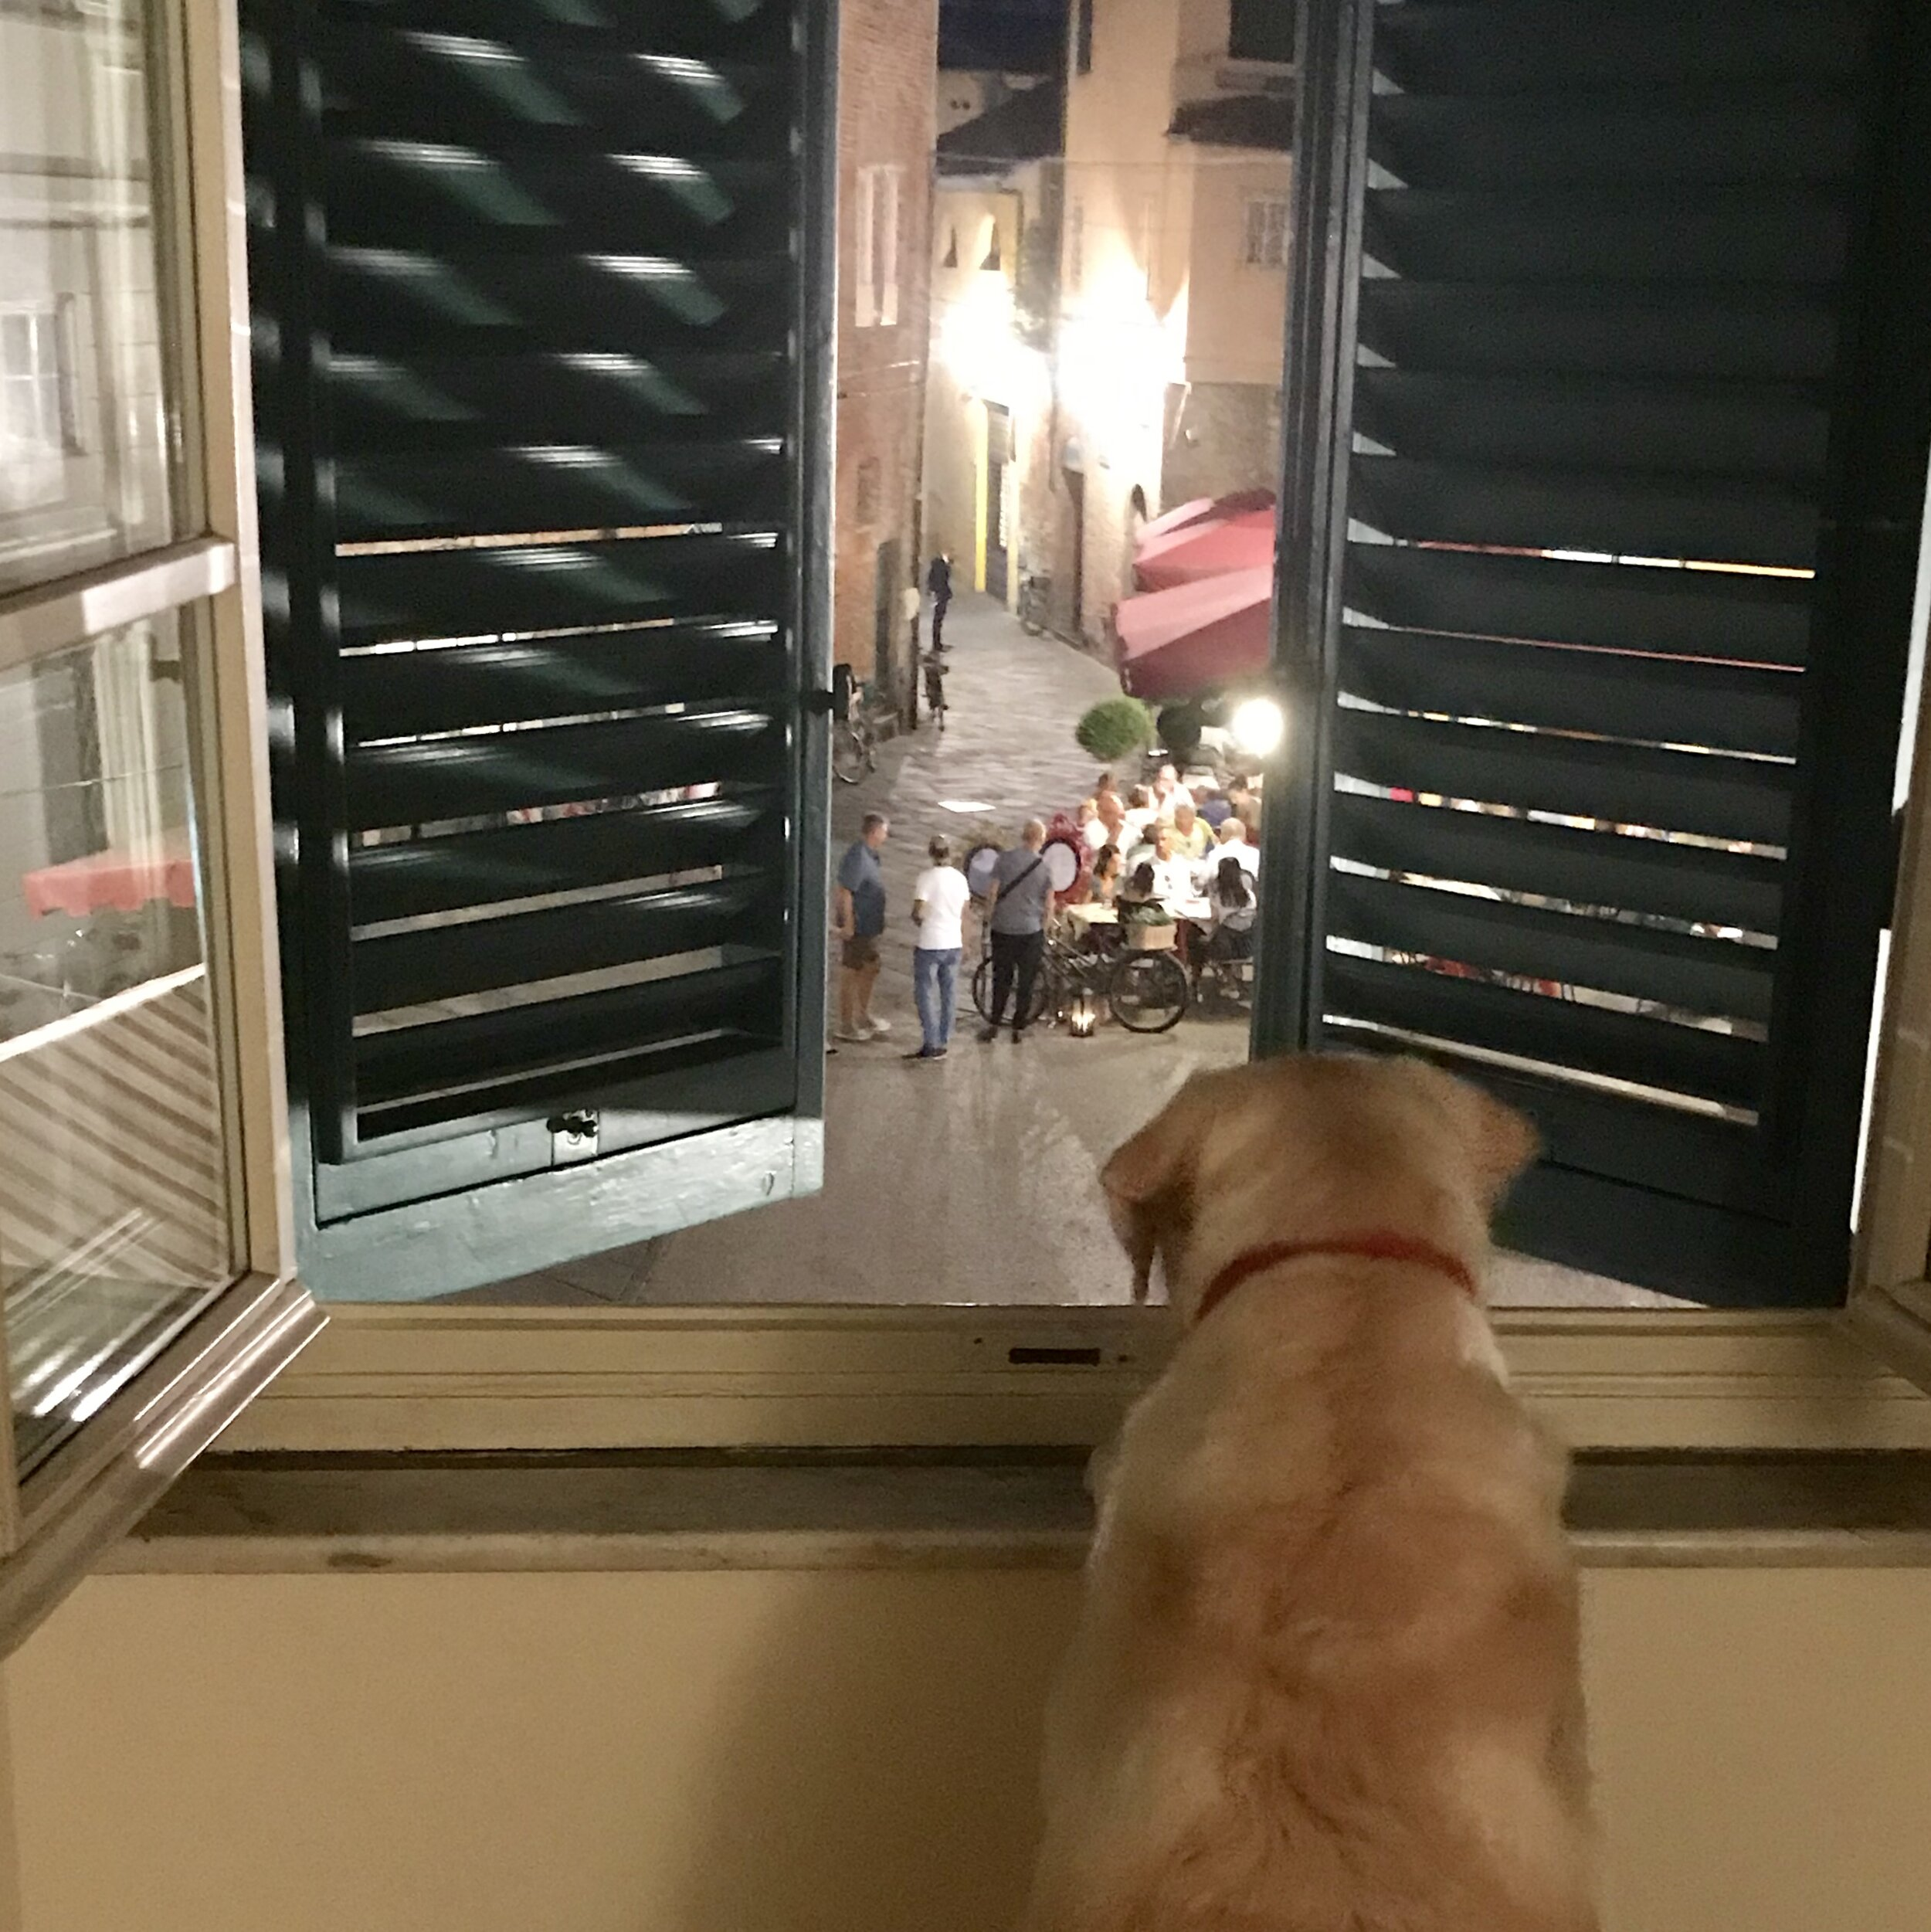 Bodhi checks out the street scene below our apartment in Italy - several days after successfully making the move here from the United States.